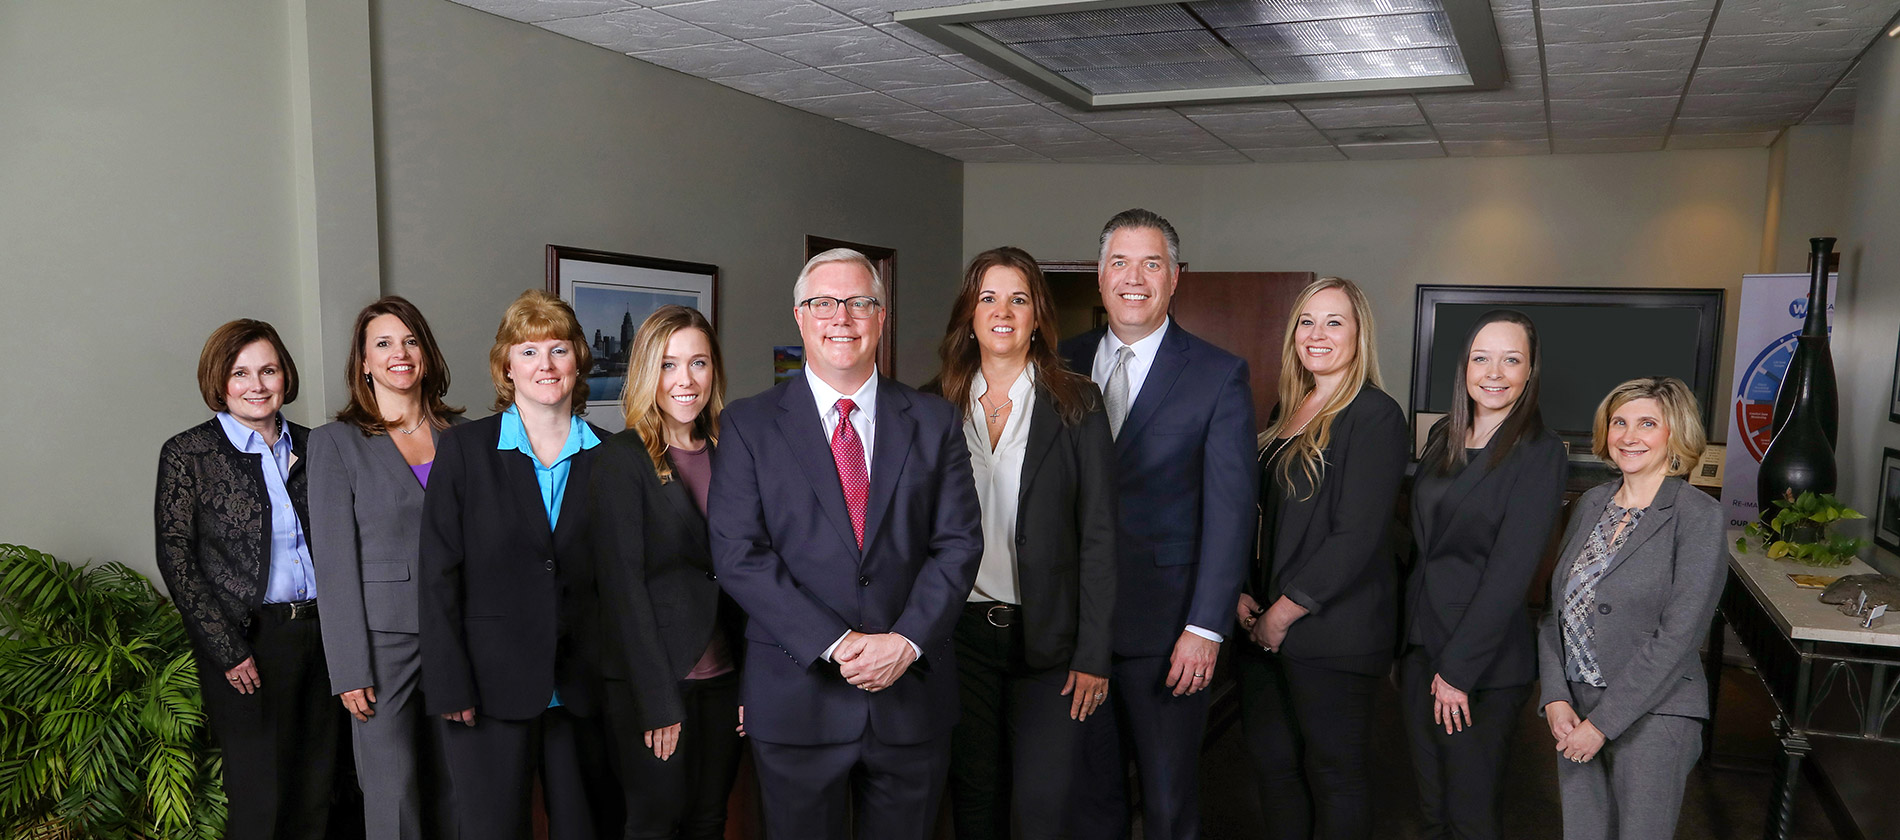 Wealthcare Management Team